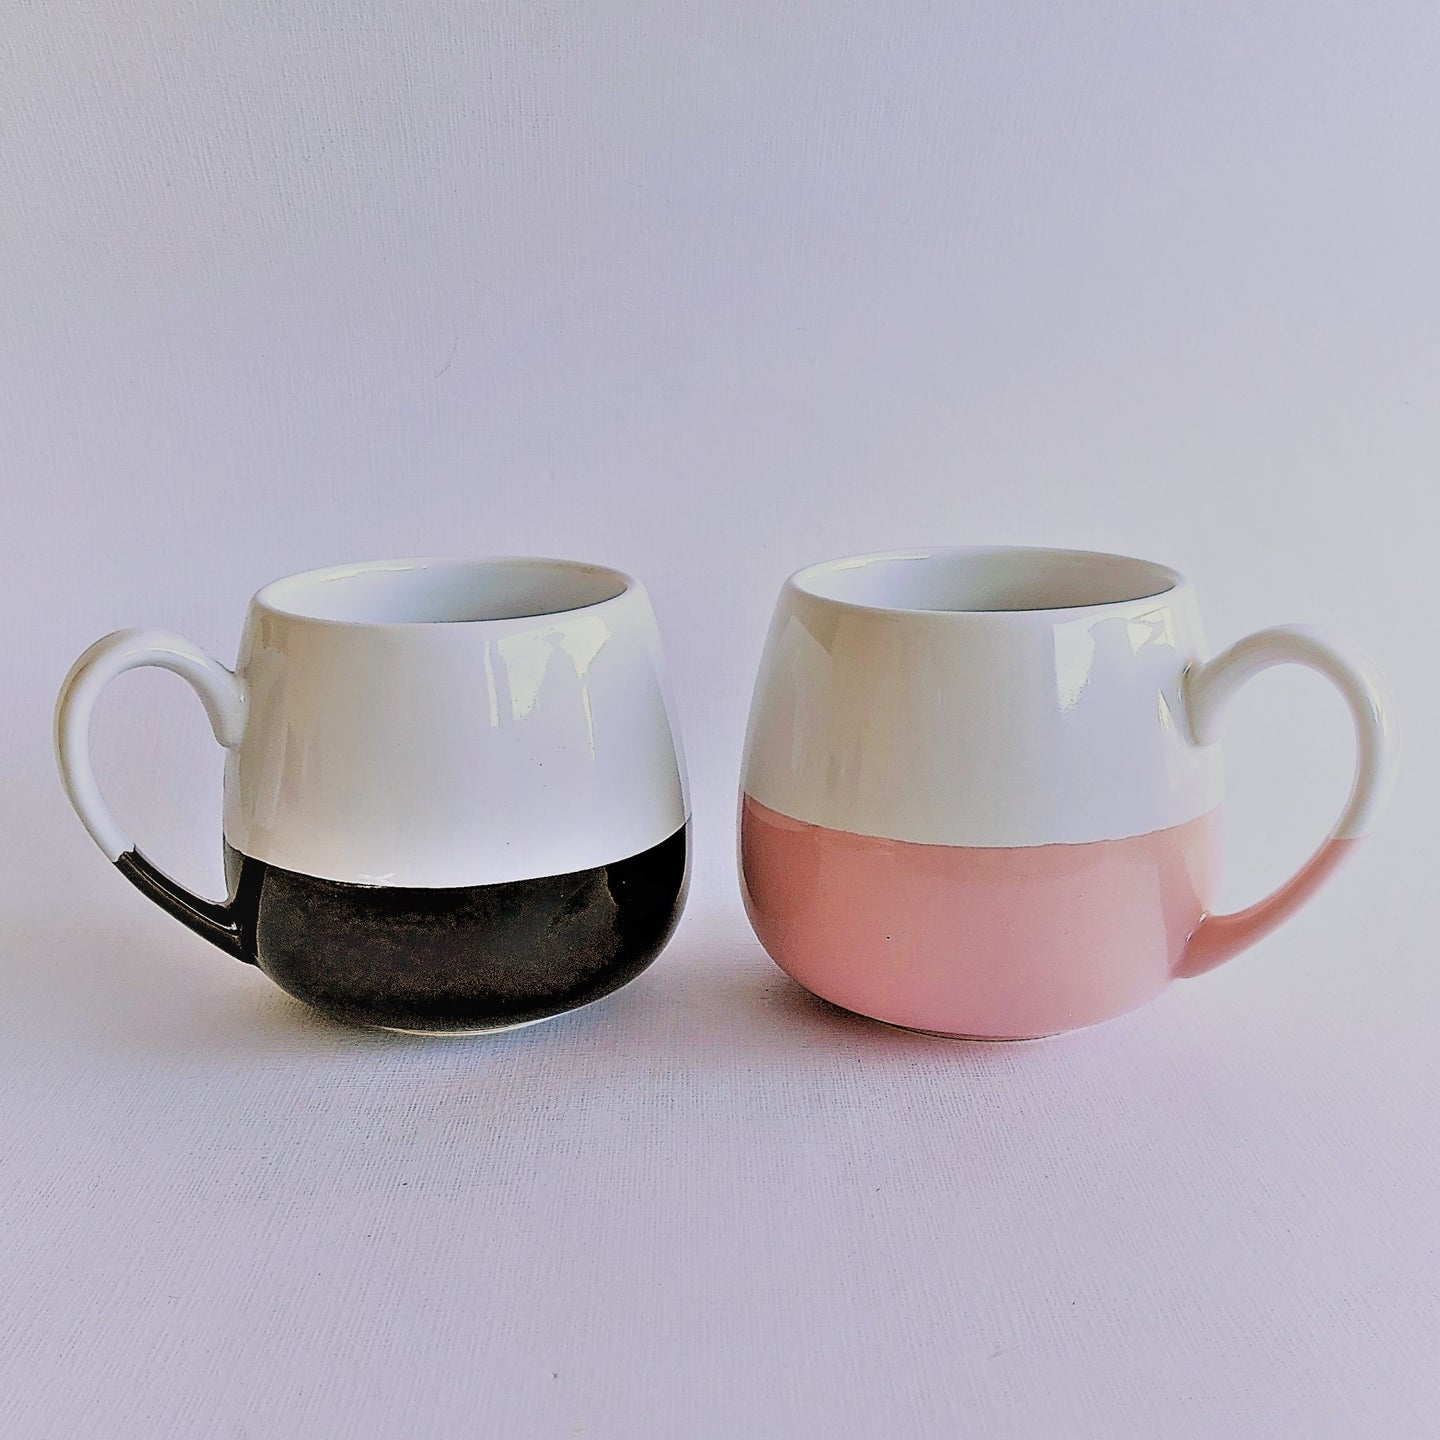 The Swirl Box handcrafted black/pink and white ceramic mug